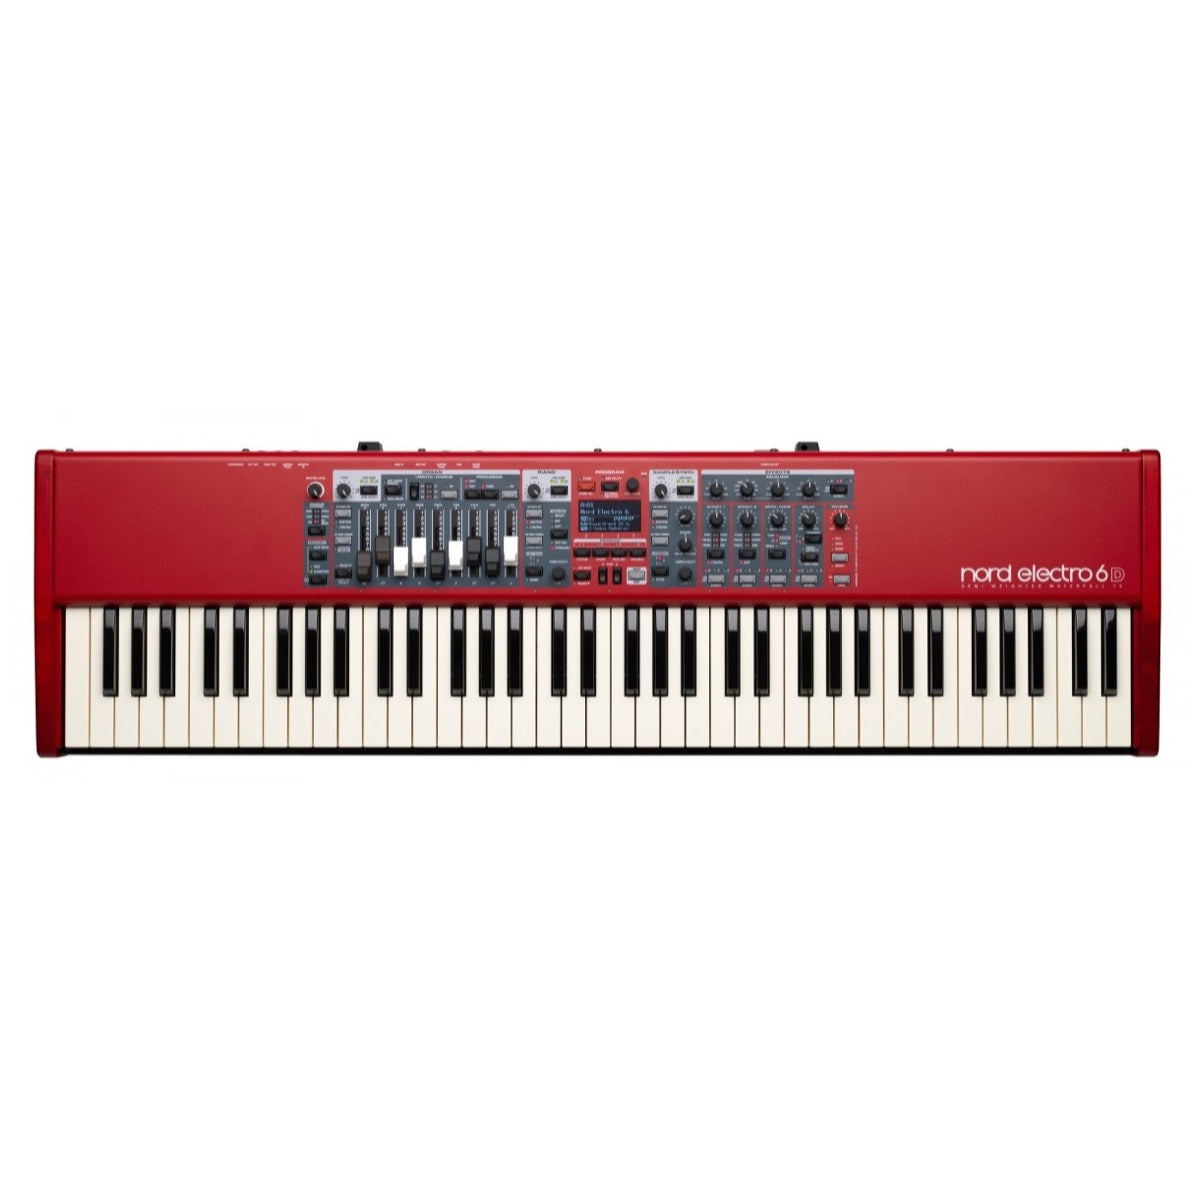 Nord Electro 6D 73 Synthesizer Keyboard, 73-Key